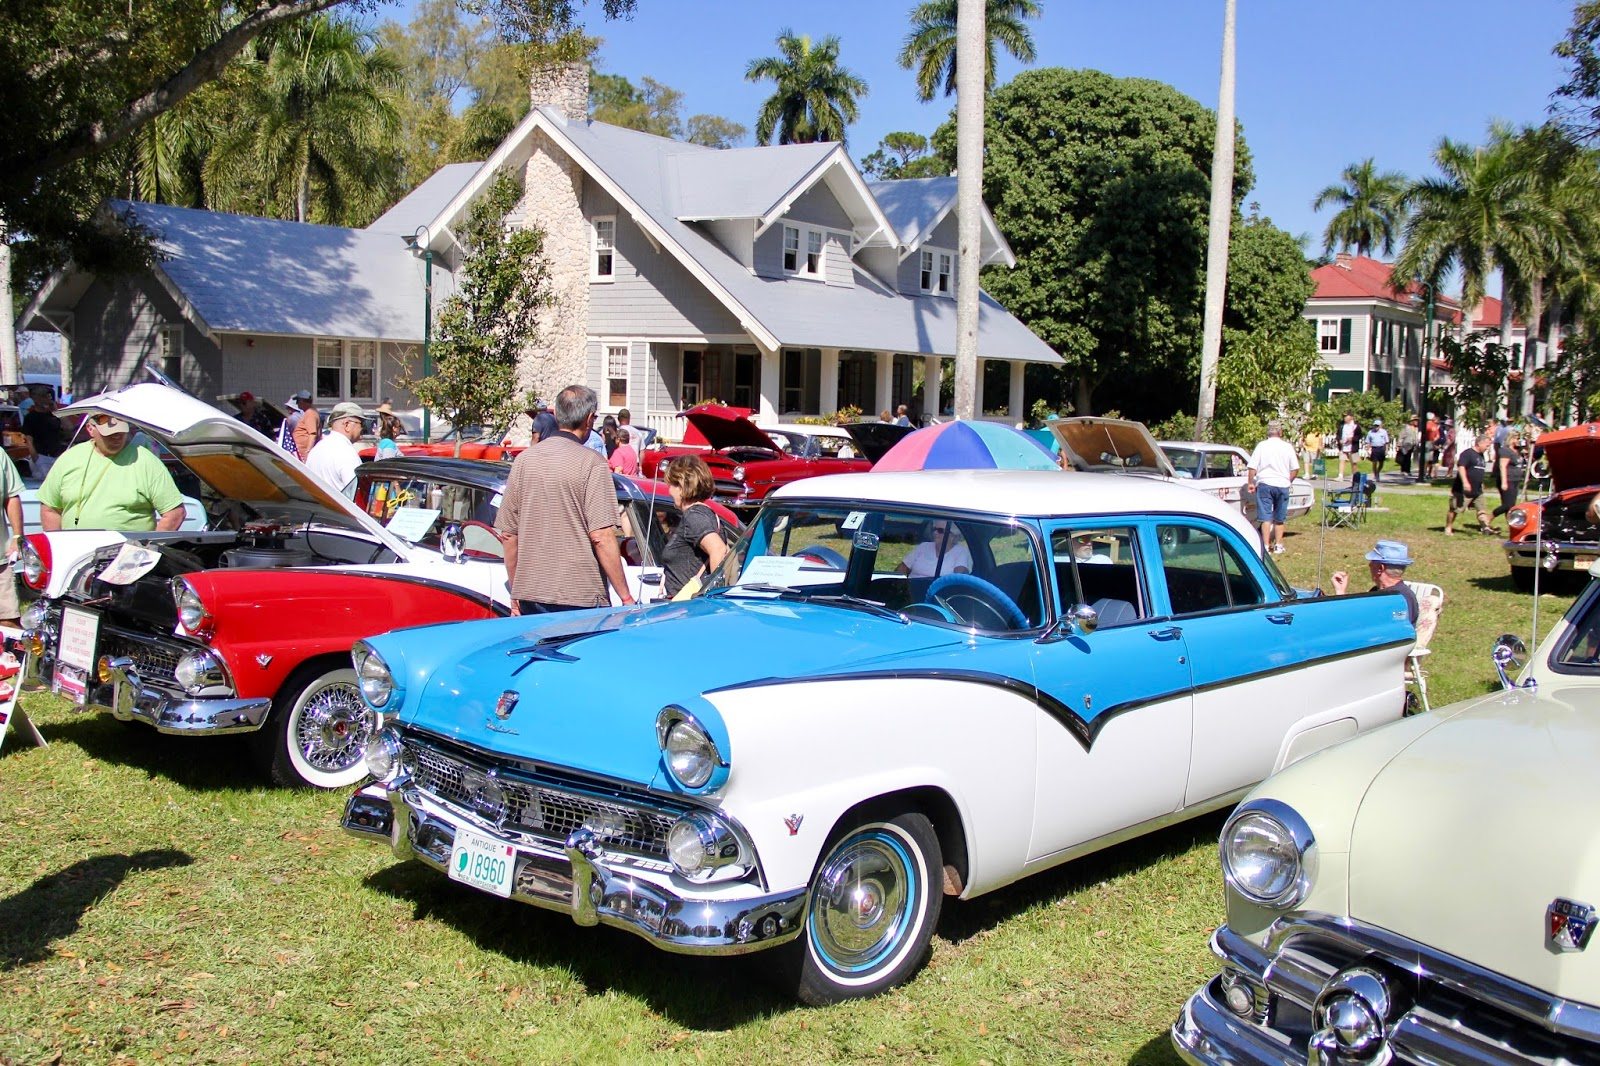 1955 ford fairlane crown victoria blog cars on line - My Mother Had A Two Tone Blue And White 1955 Ford Fairlane Like This One First Car I Ever Drove